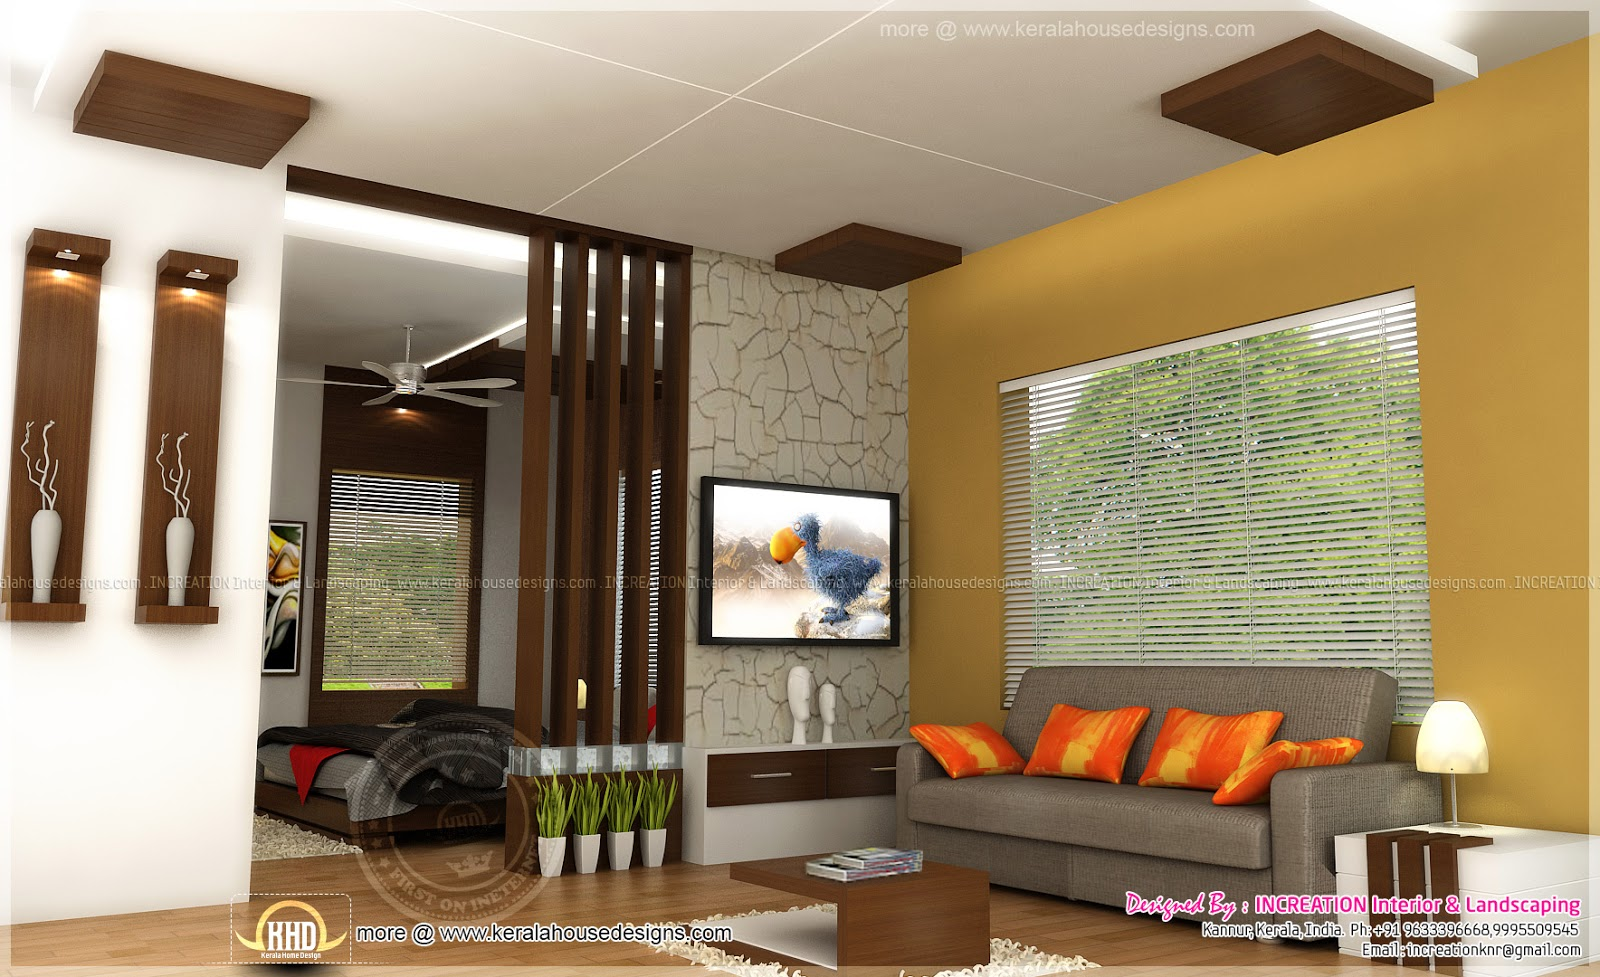 Interior designs from kannur kerala home kerala plans Internal house design